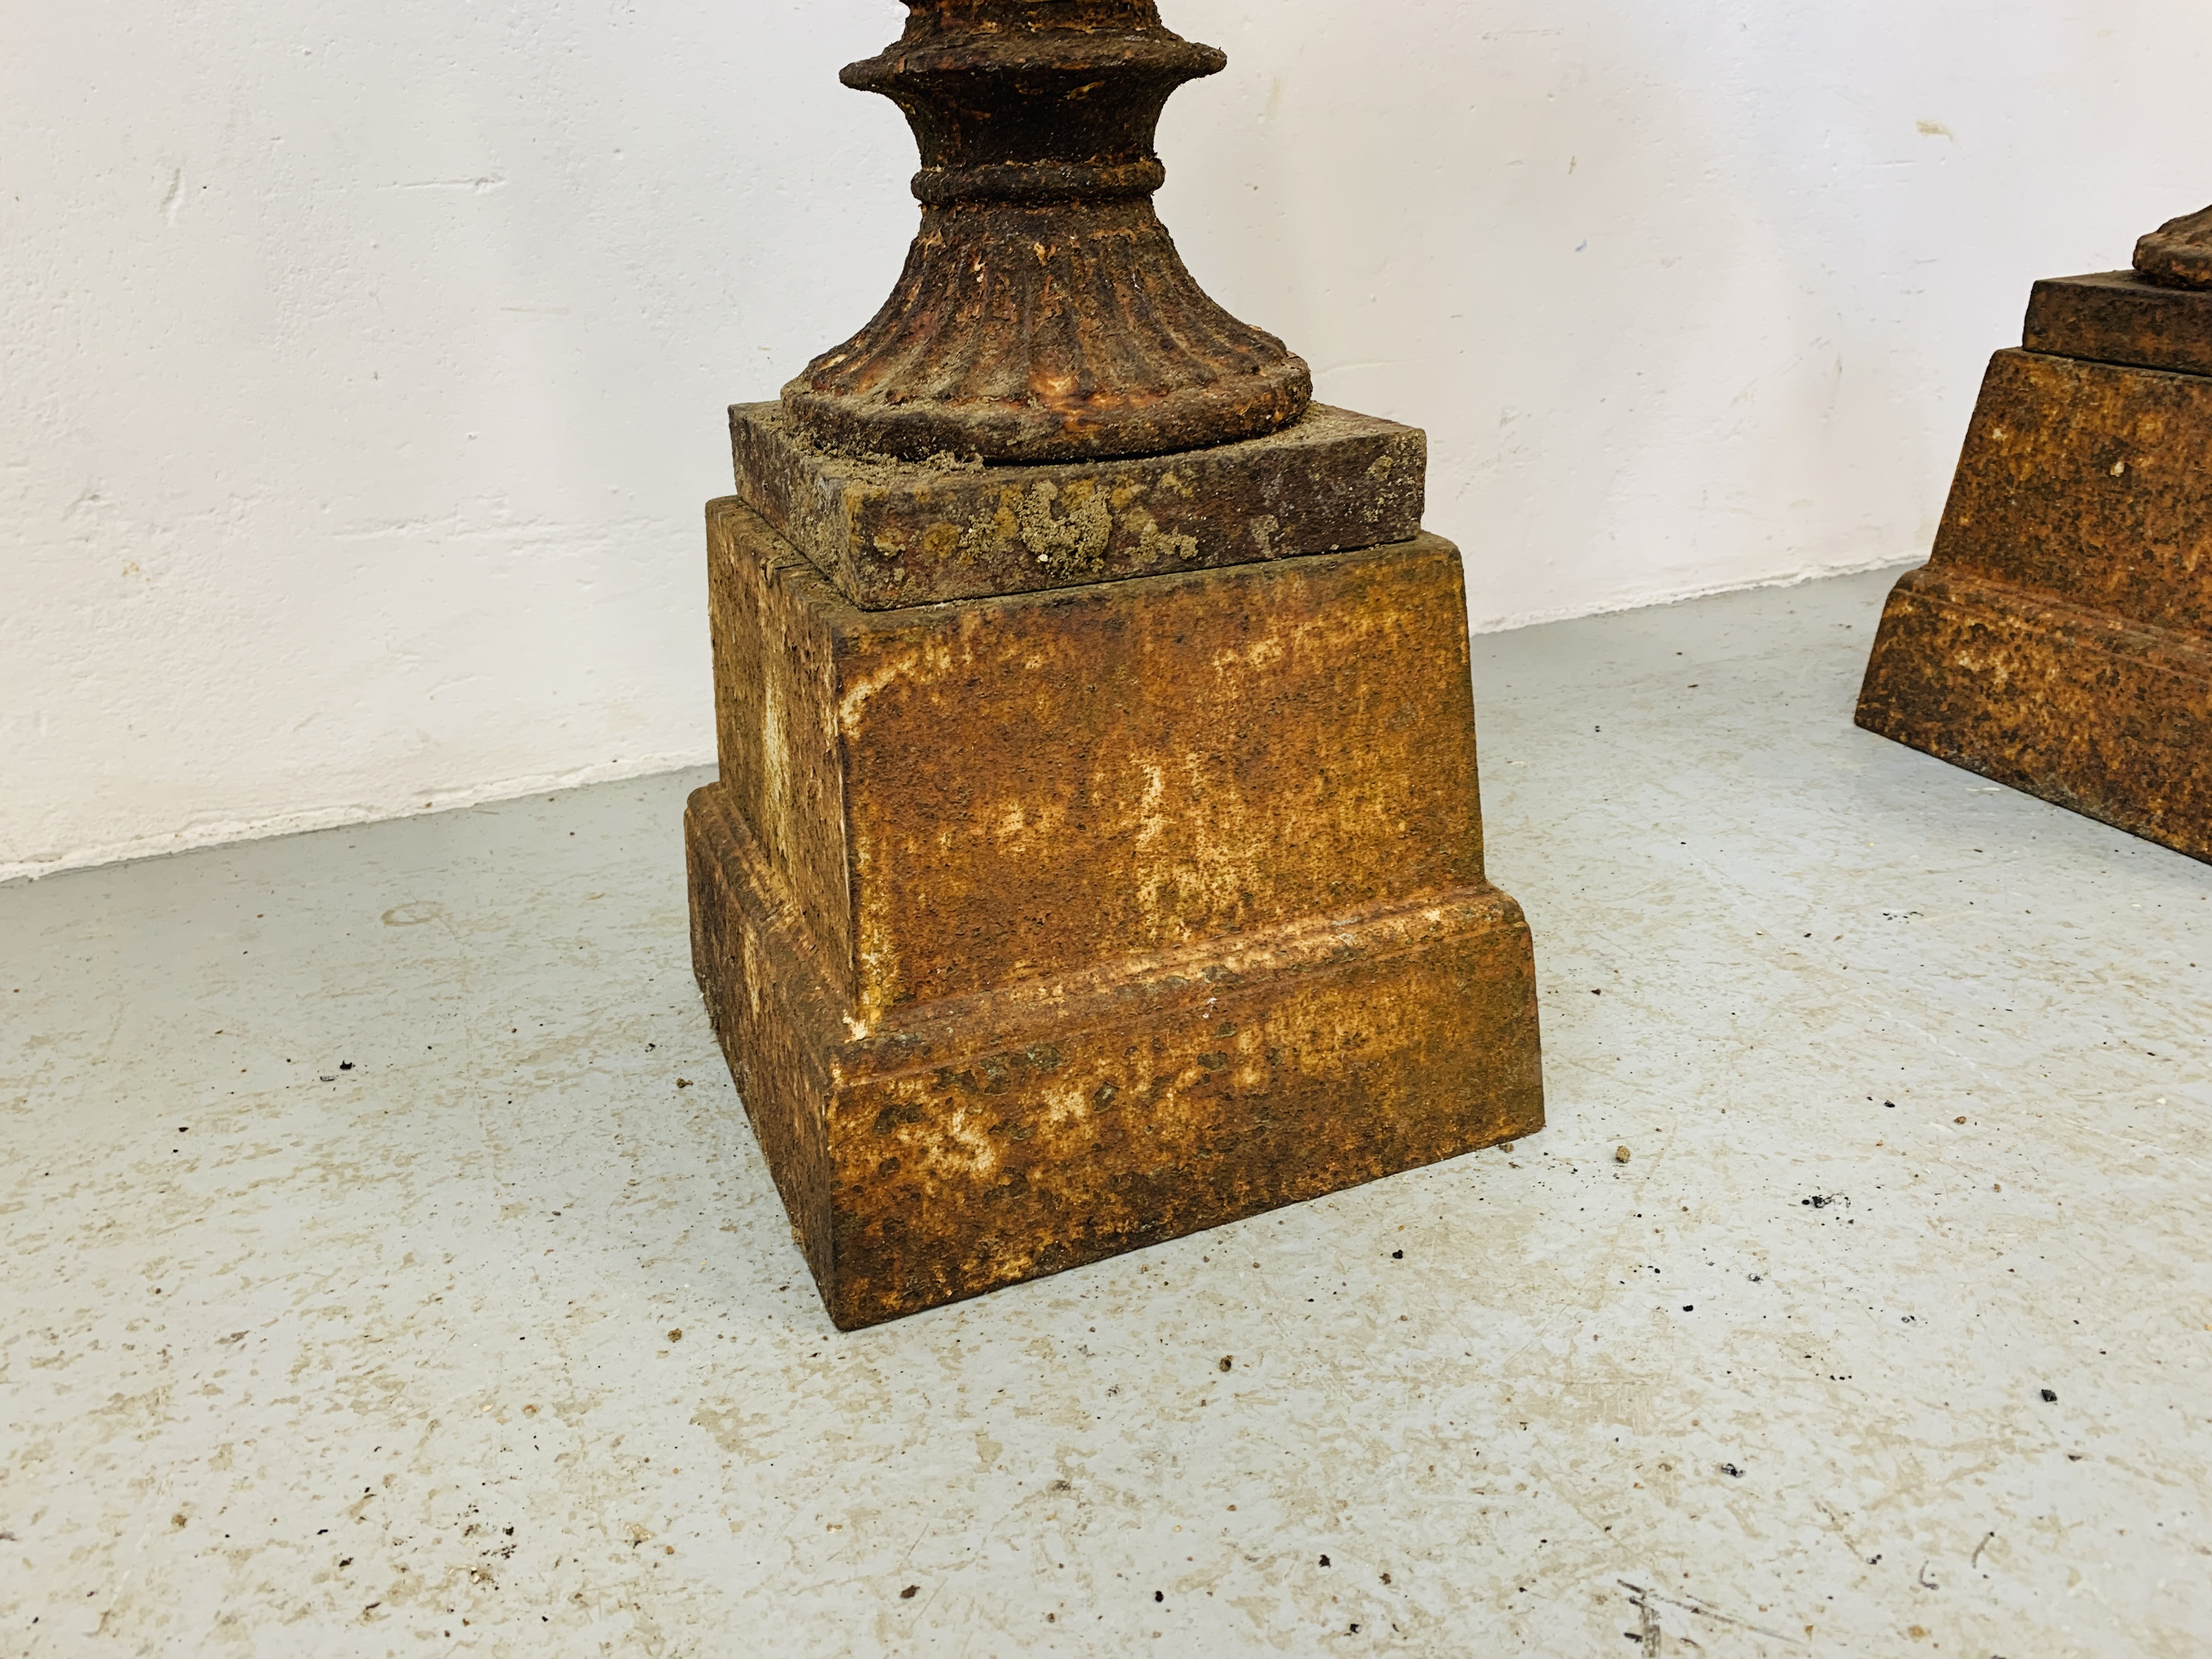 A PAIR OF CAST IRON TULIP SHAPE GARDEN URNS ON STANDS A/F CONDITION - OVERALL HEIGHT 68CM. - Image 7 of 13